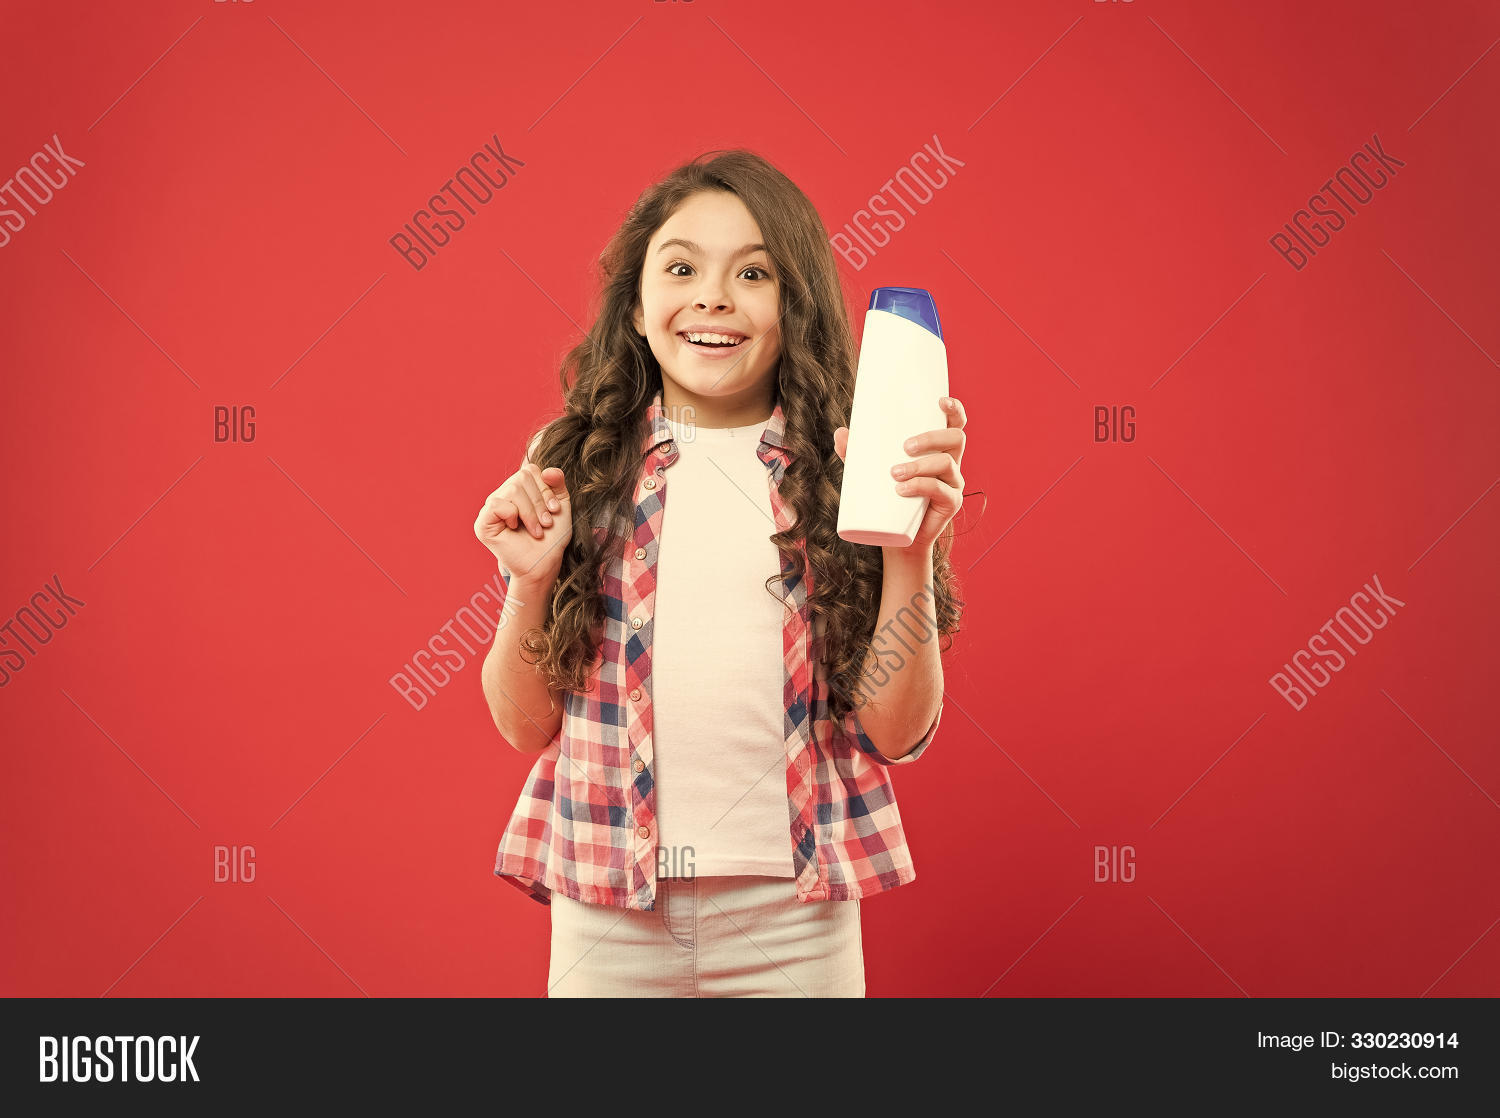 Hygiene habits for kids. Happy little girl holding gel or shampoo bottle for personal hygiene on red background. Small child with long hair smiling with hygiene product. Everyday hygiene and health.